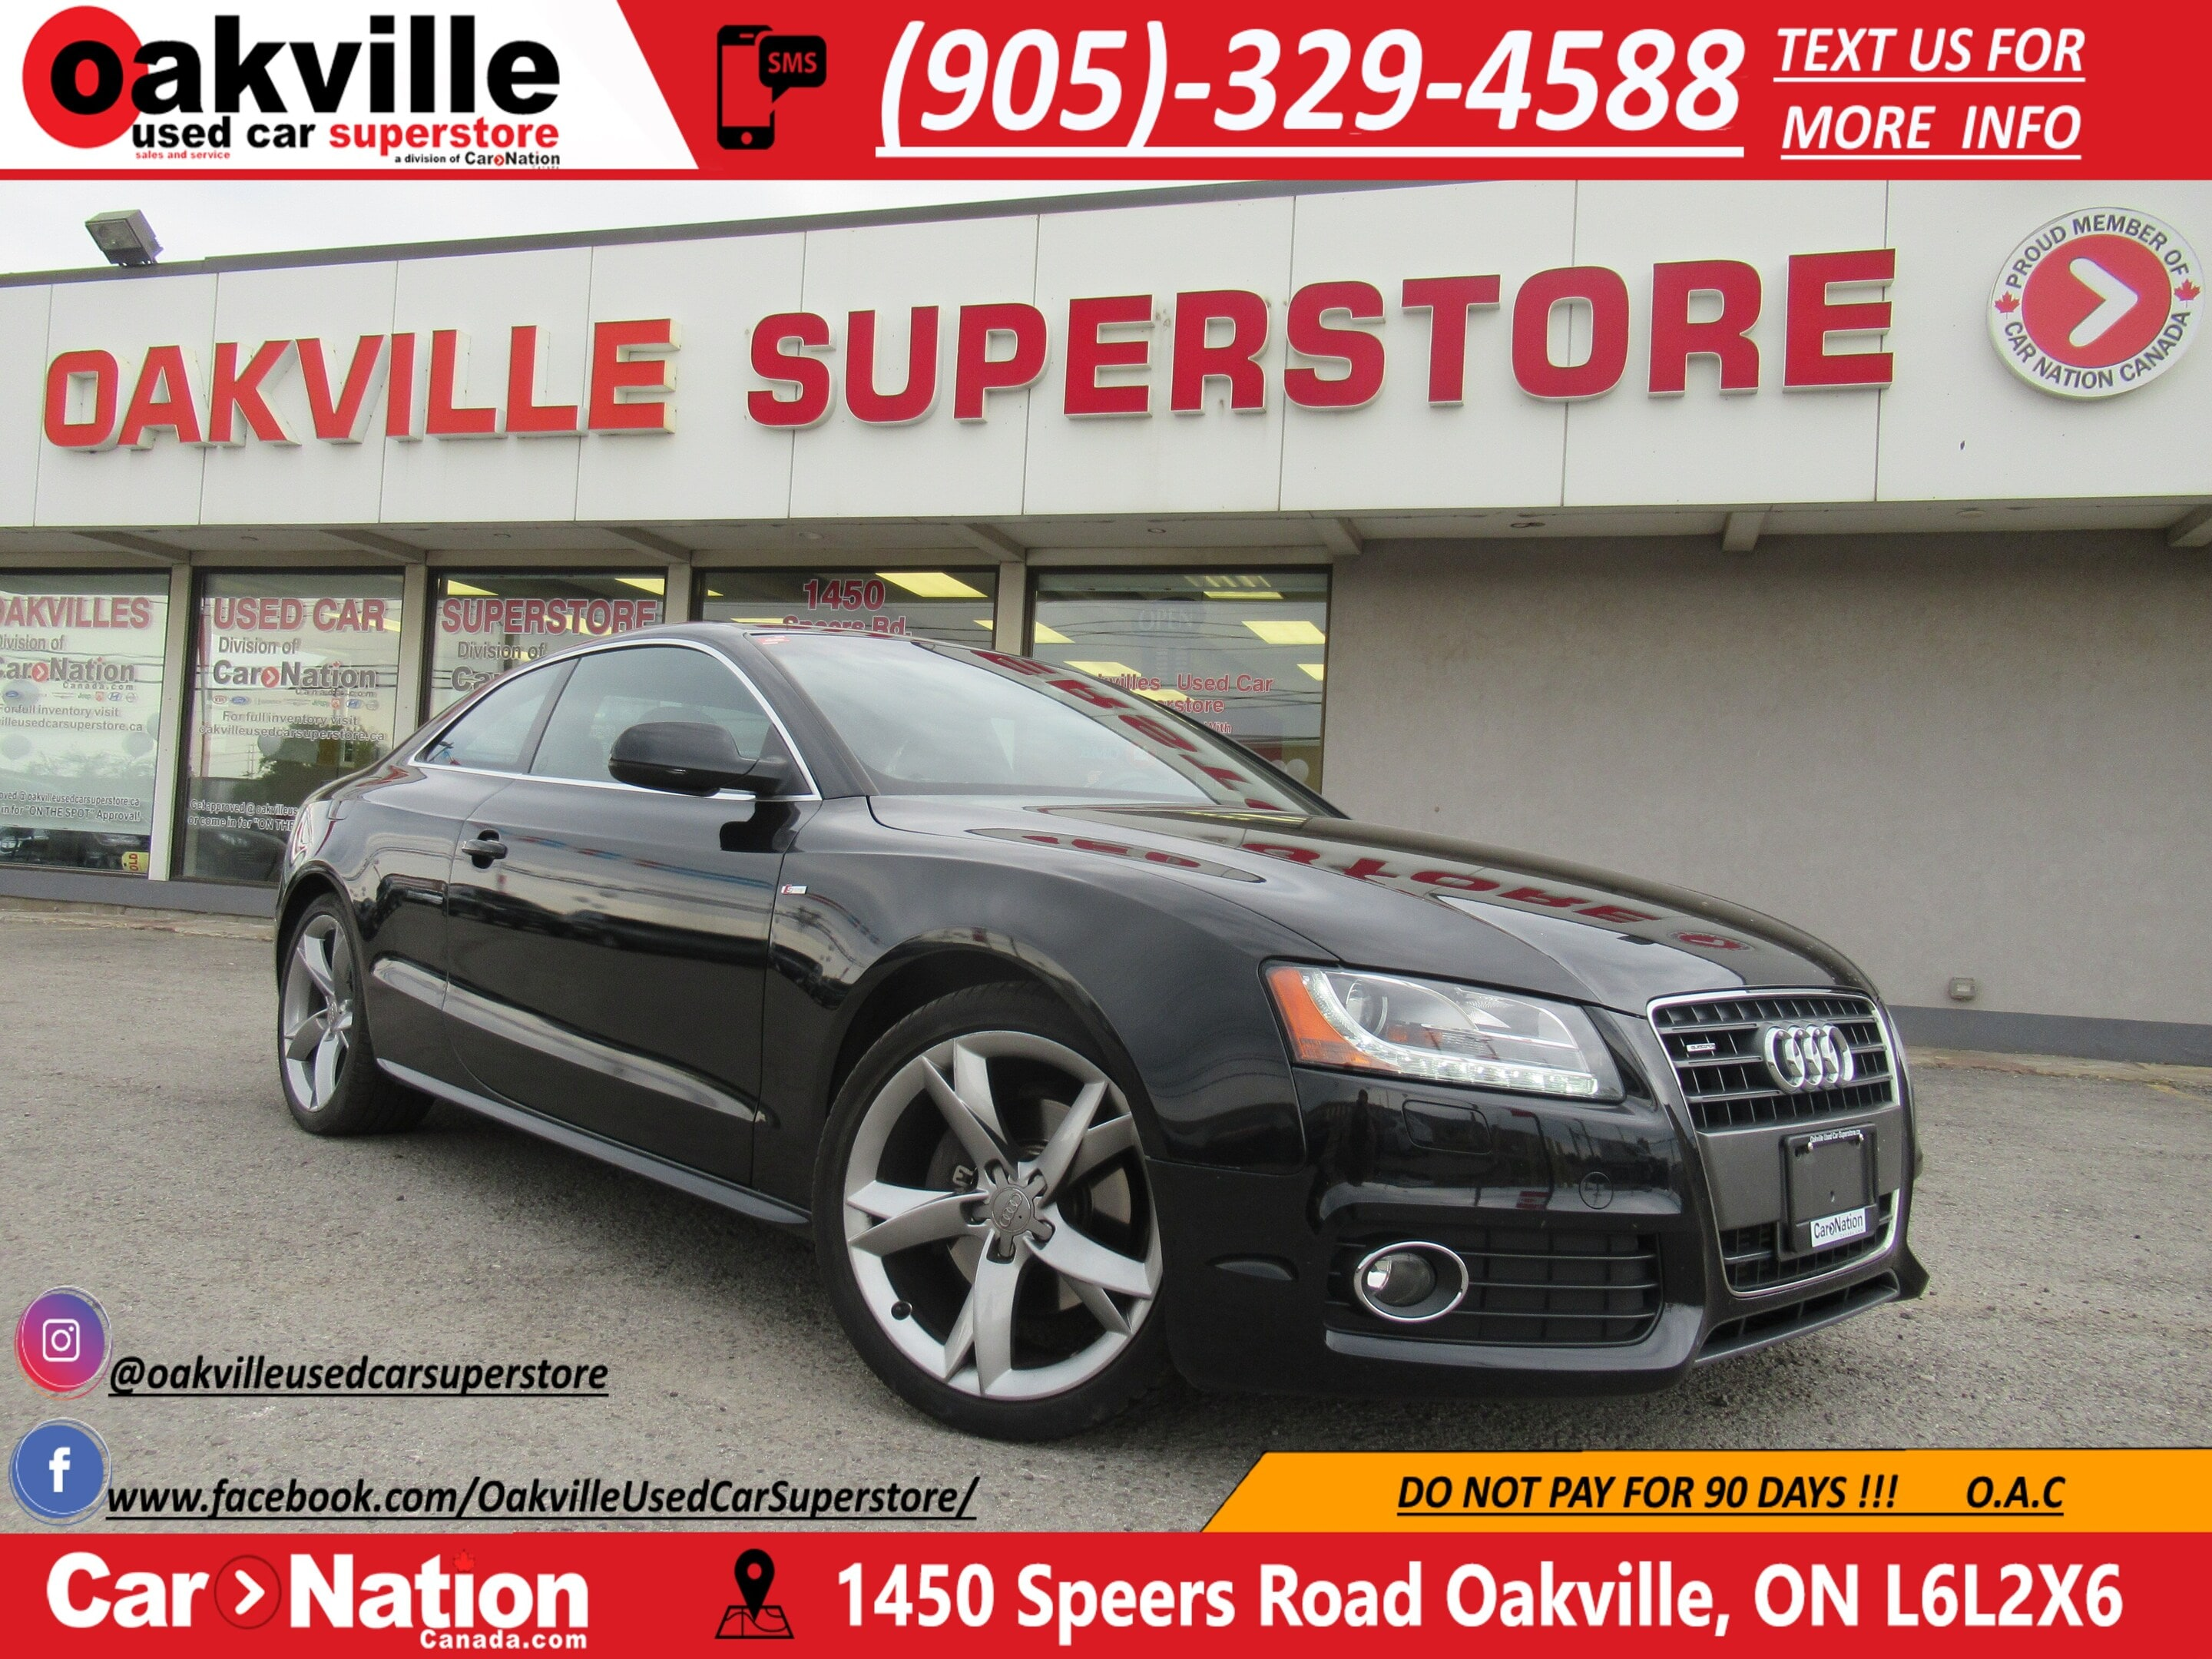 2012 Audi A5 2.0T QUATTRO | S-LINE | PANO ROOF | HEATED SEATS Coupe